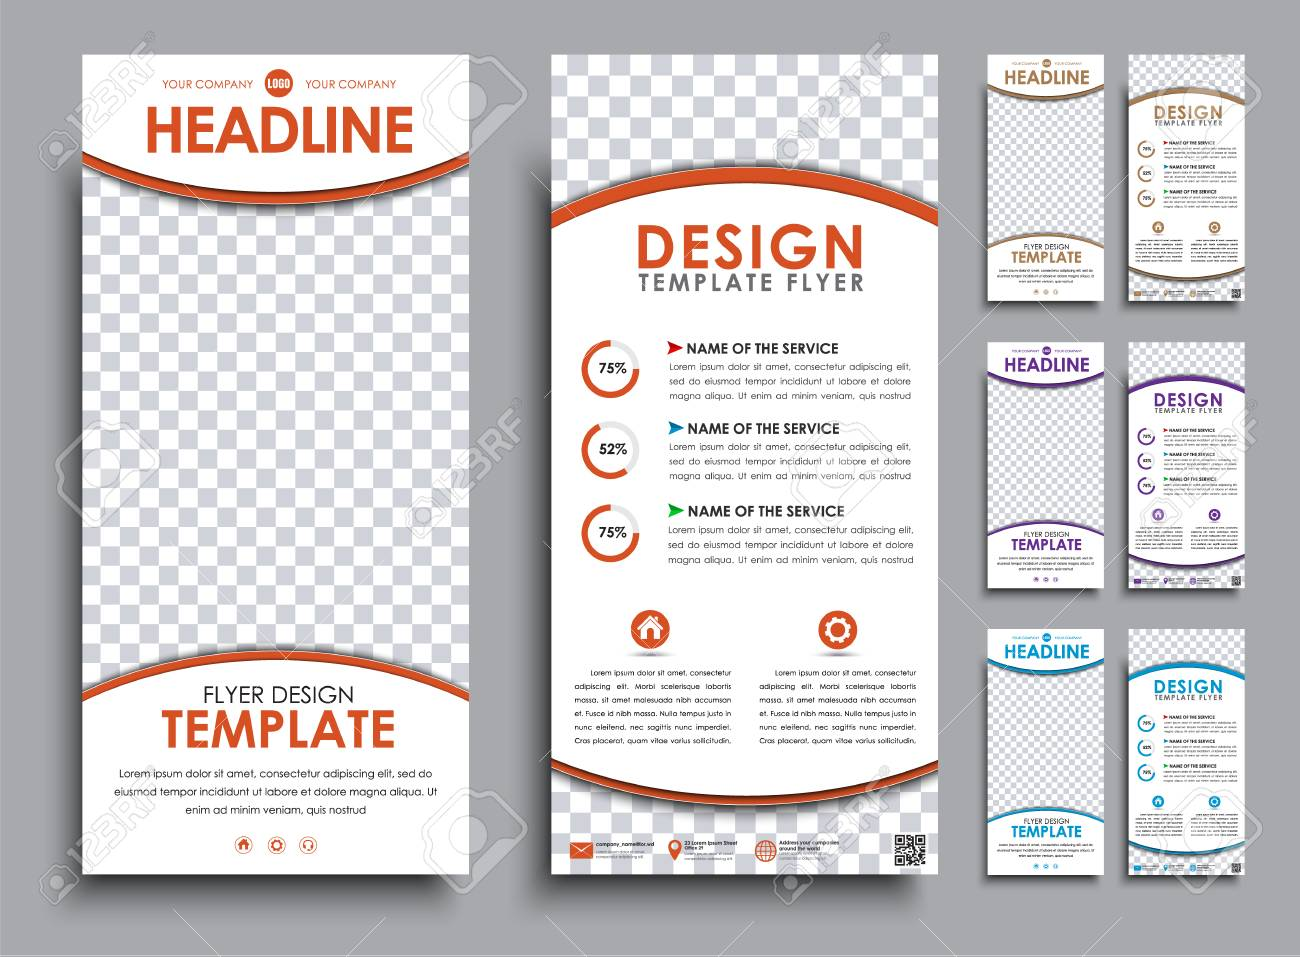 Design Of Flyers Size Of 210x99 Mm Templates 2 Pages With Space